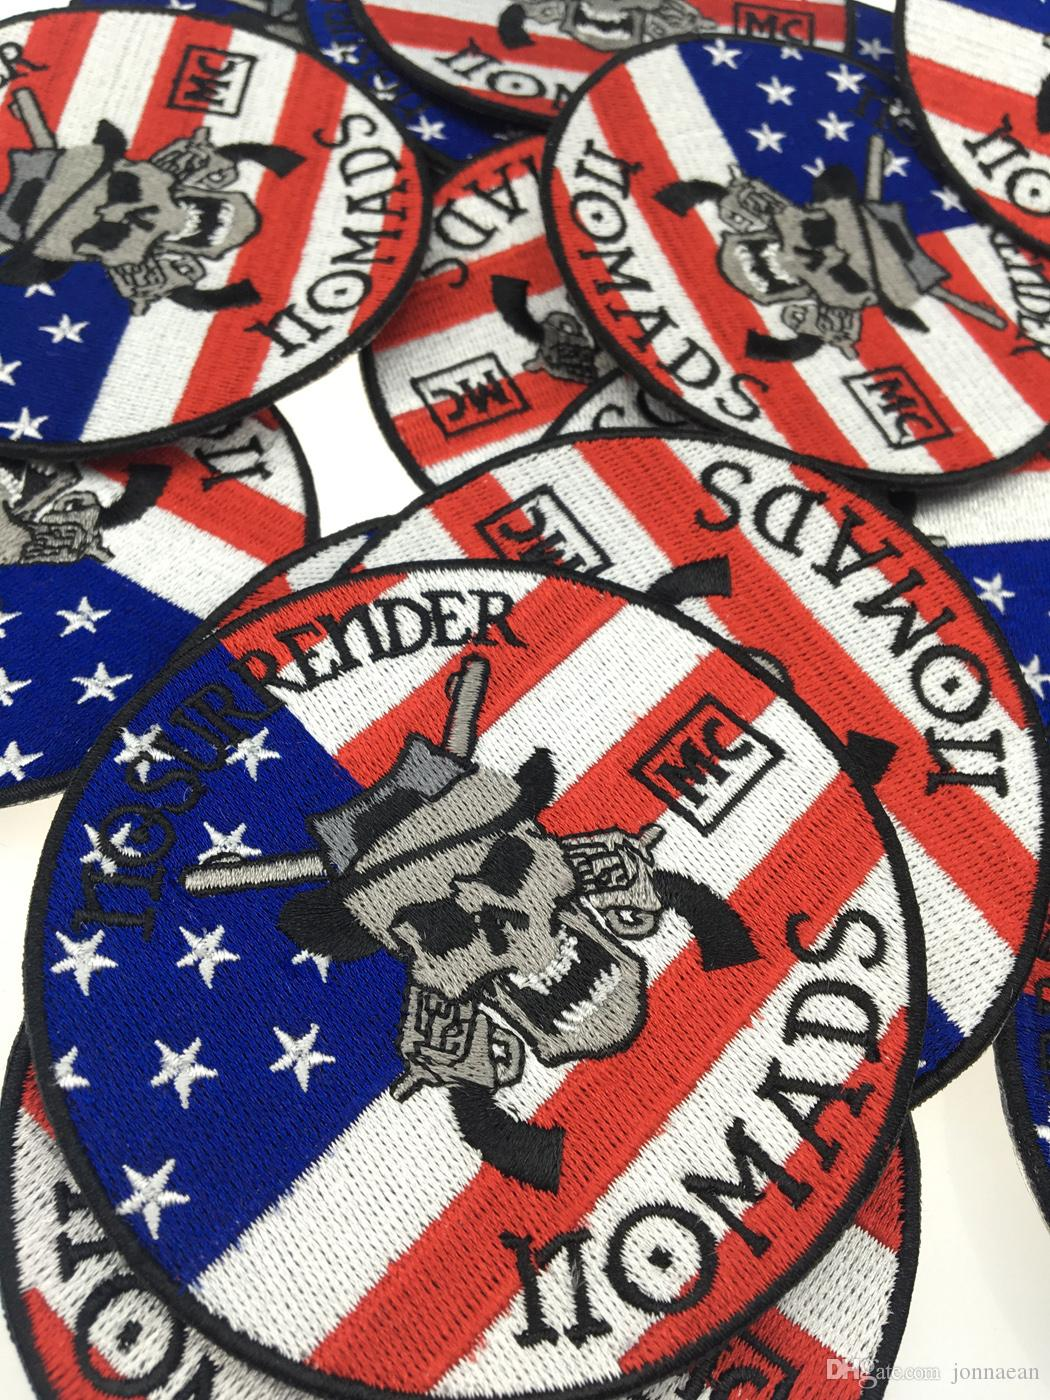 Famous No Surrender Nomads Embroidered Iron On Patch Iron On Sew On Motorcyble Club Badge MC Biker Patch Wholesale